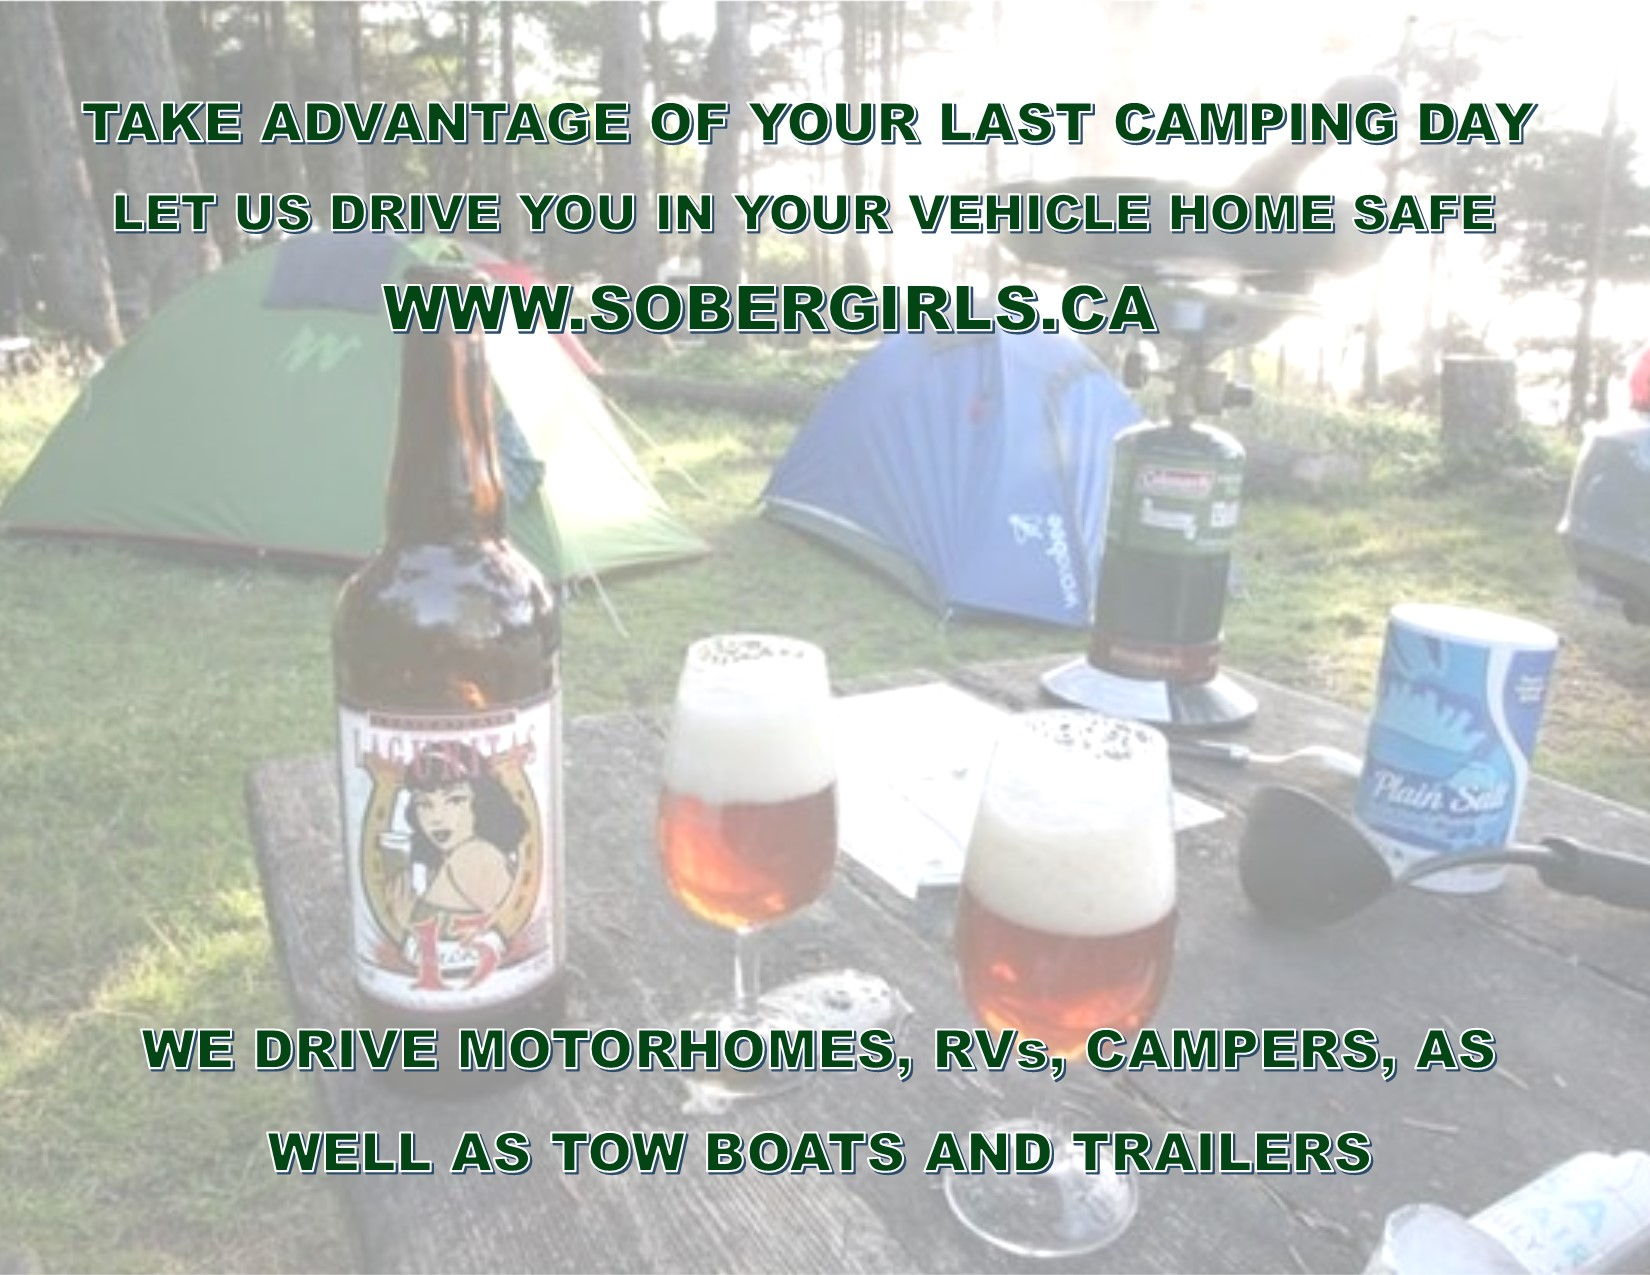 Drinking and Camping? Call a Designated Driver